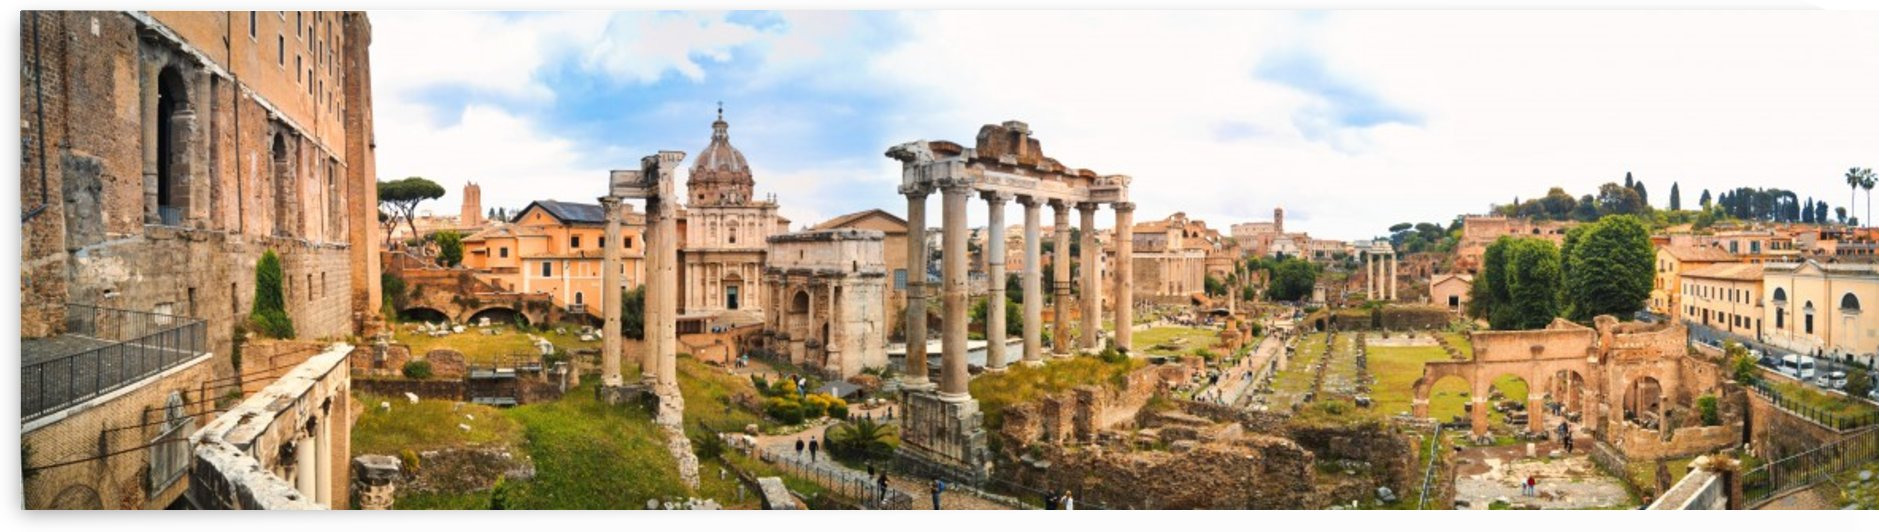 Roman Forum Panoramic view from Capitoline Hills by Pixelme ca